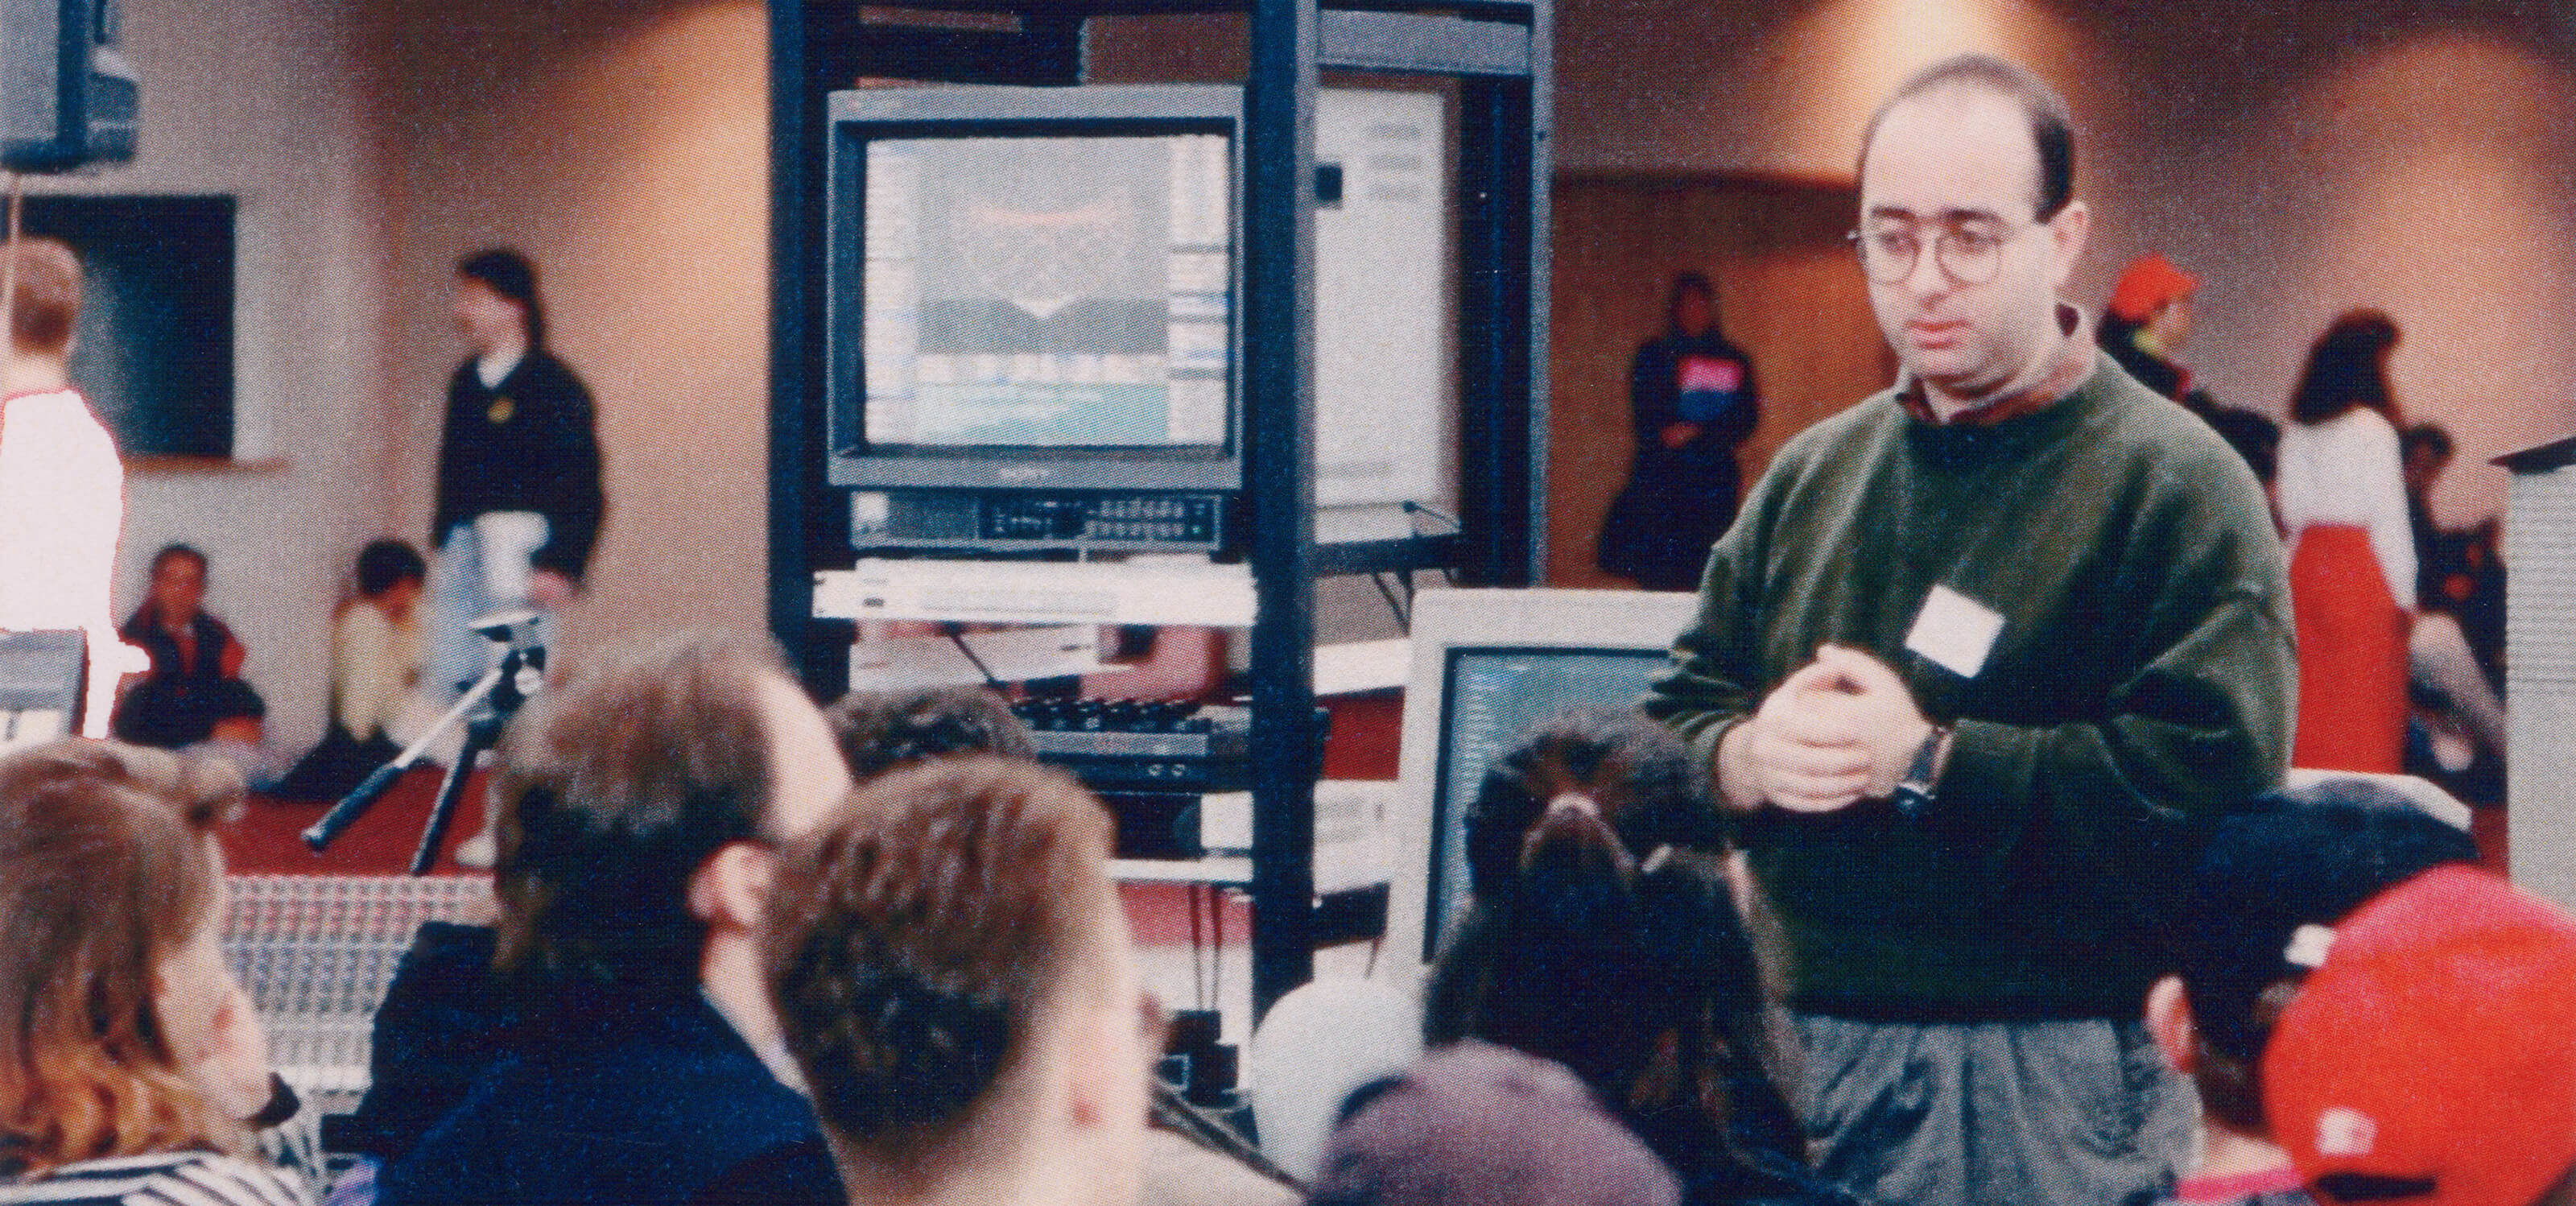 DigiPen founder and president Claude Comair speaks at a convention in 1989